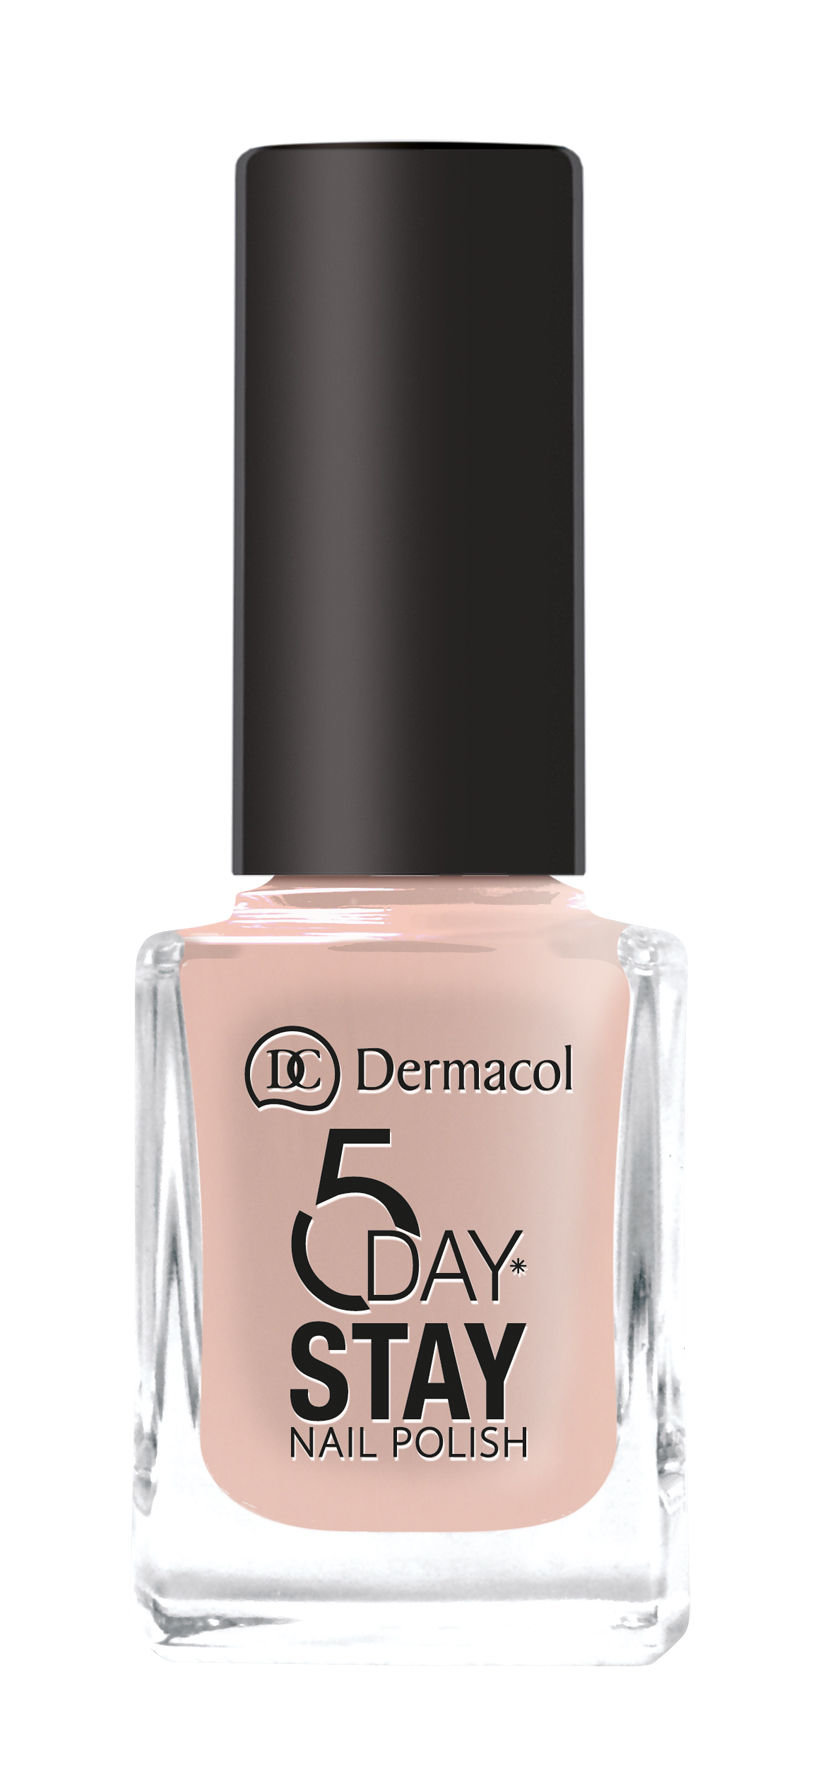 Dermacol 5 Day Stay Cosmetic 11ml 08 Nude Skin